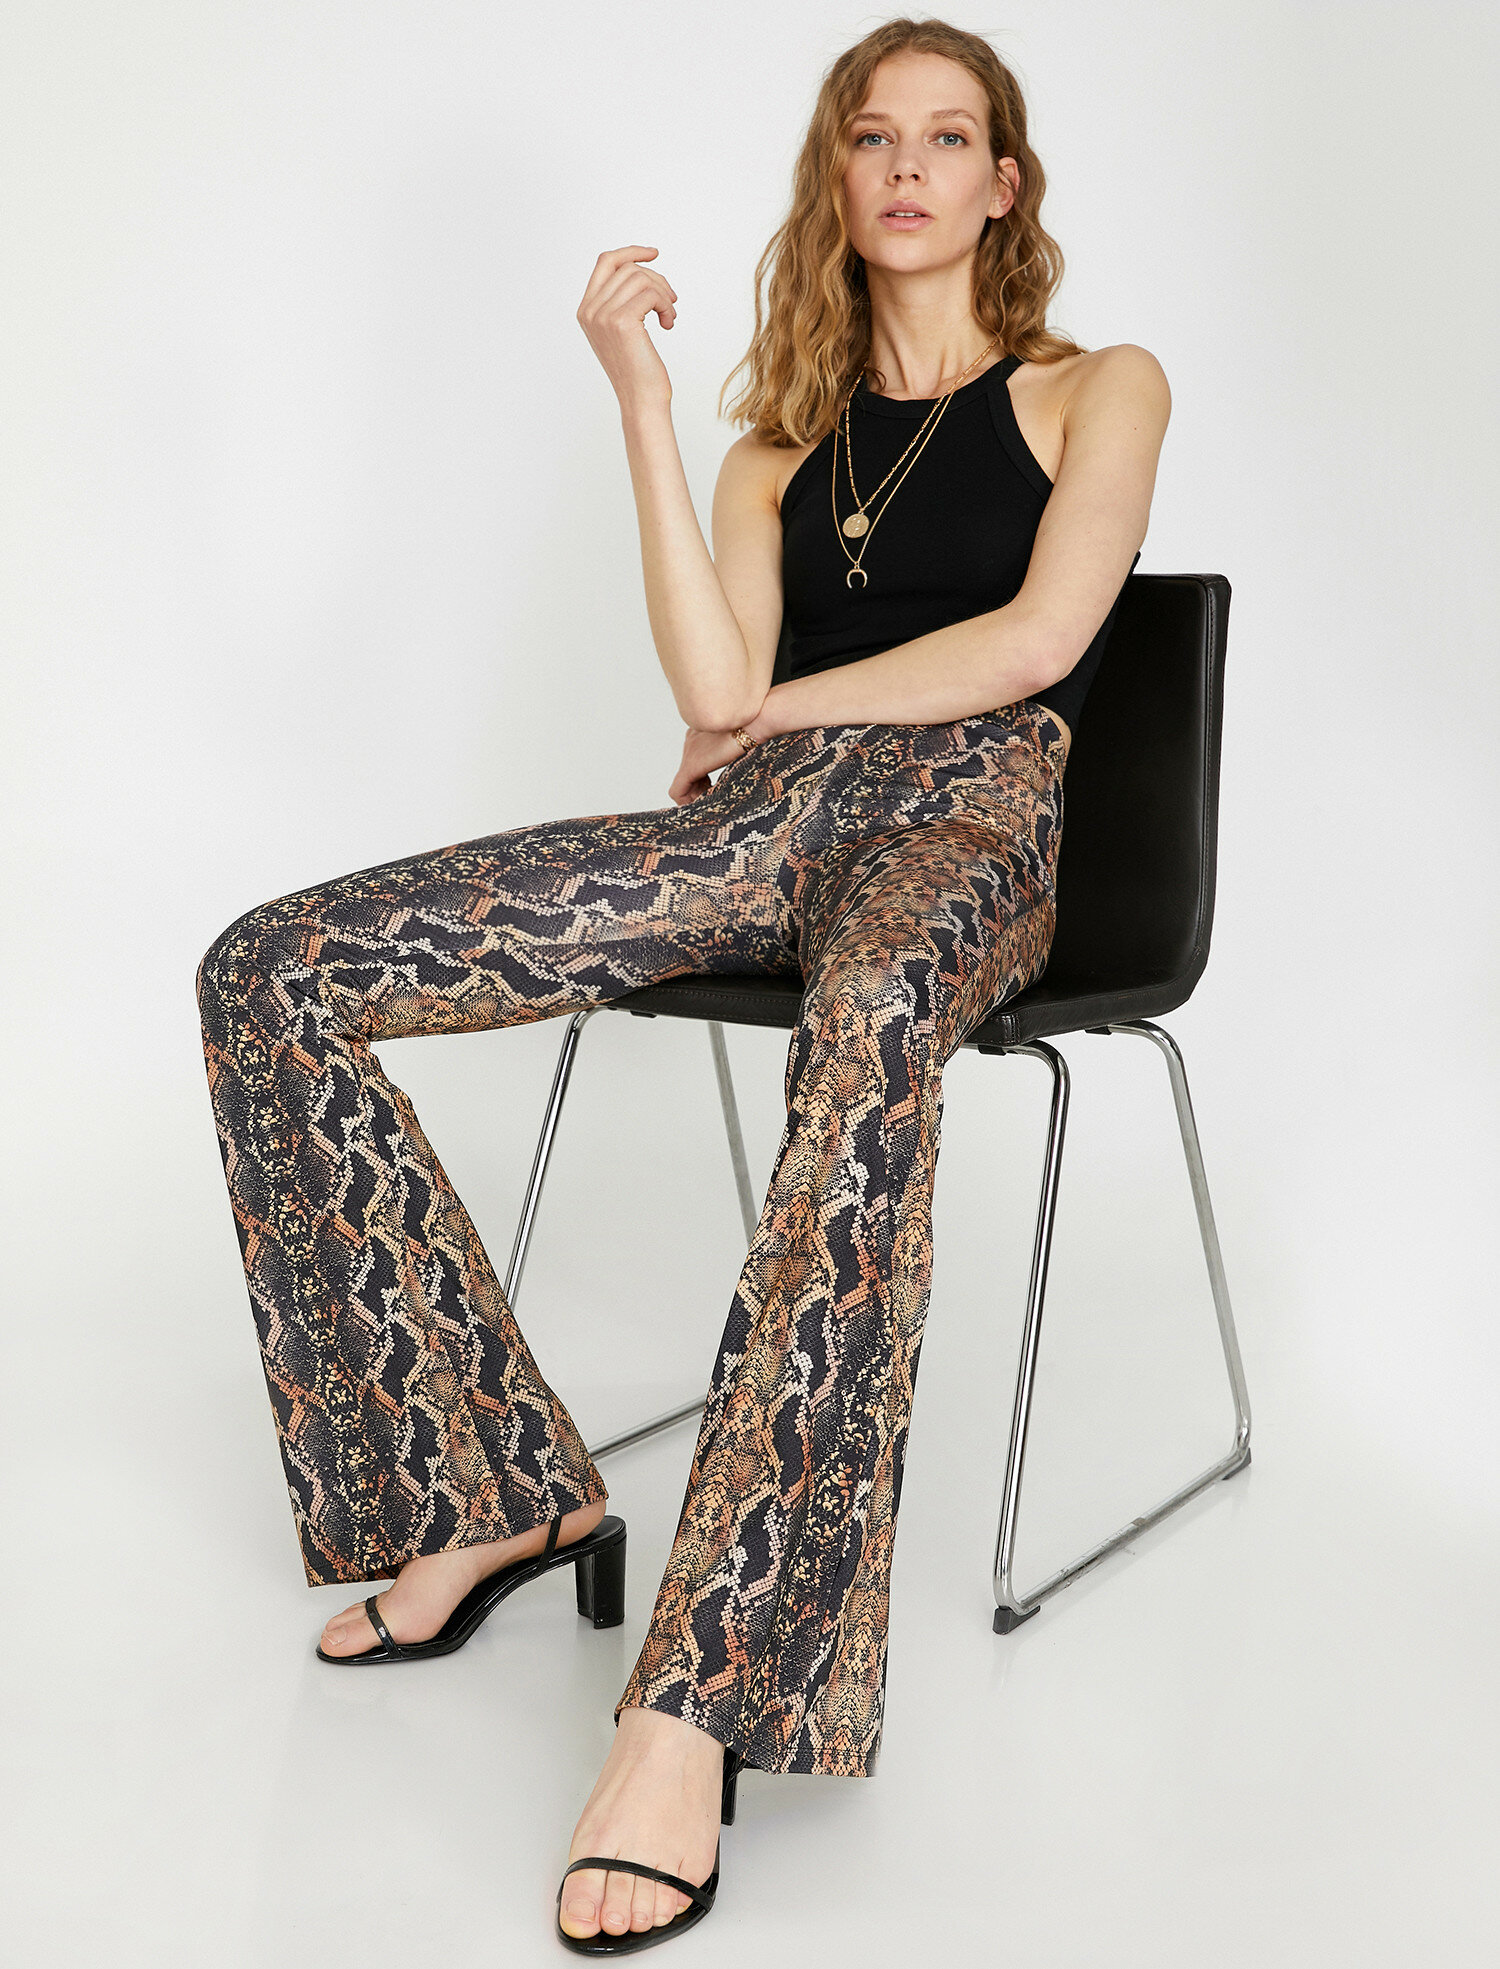 women's/ladies fashion trousers clothing manufacturer private label